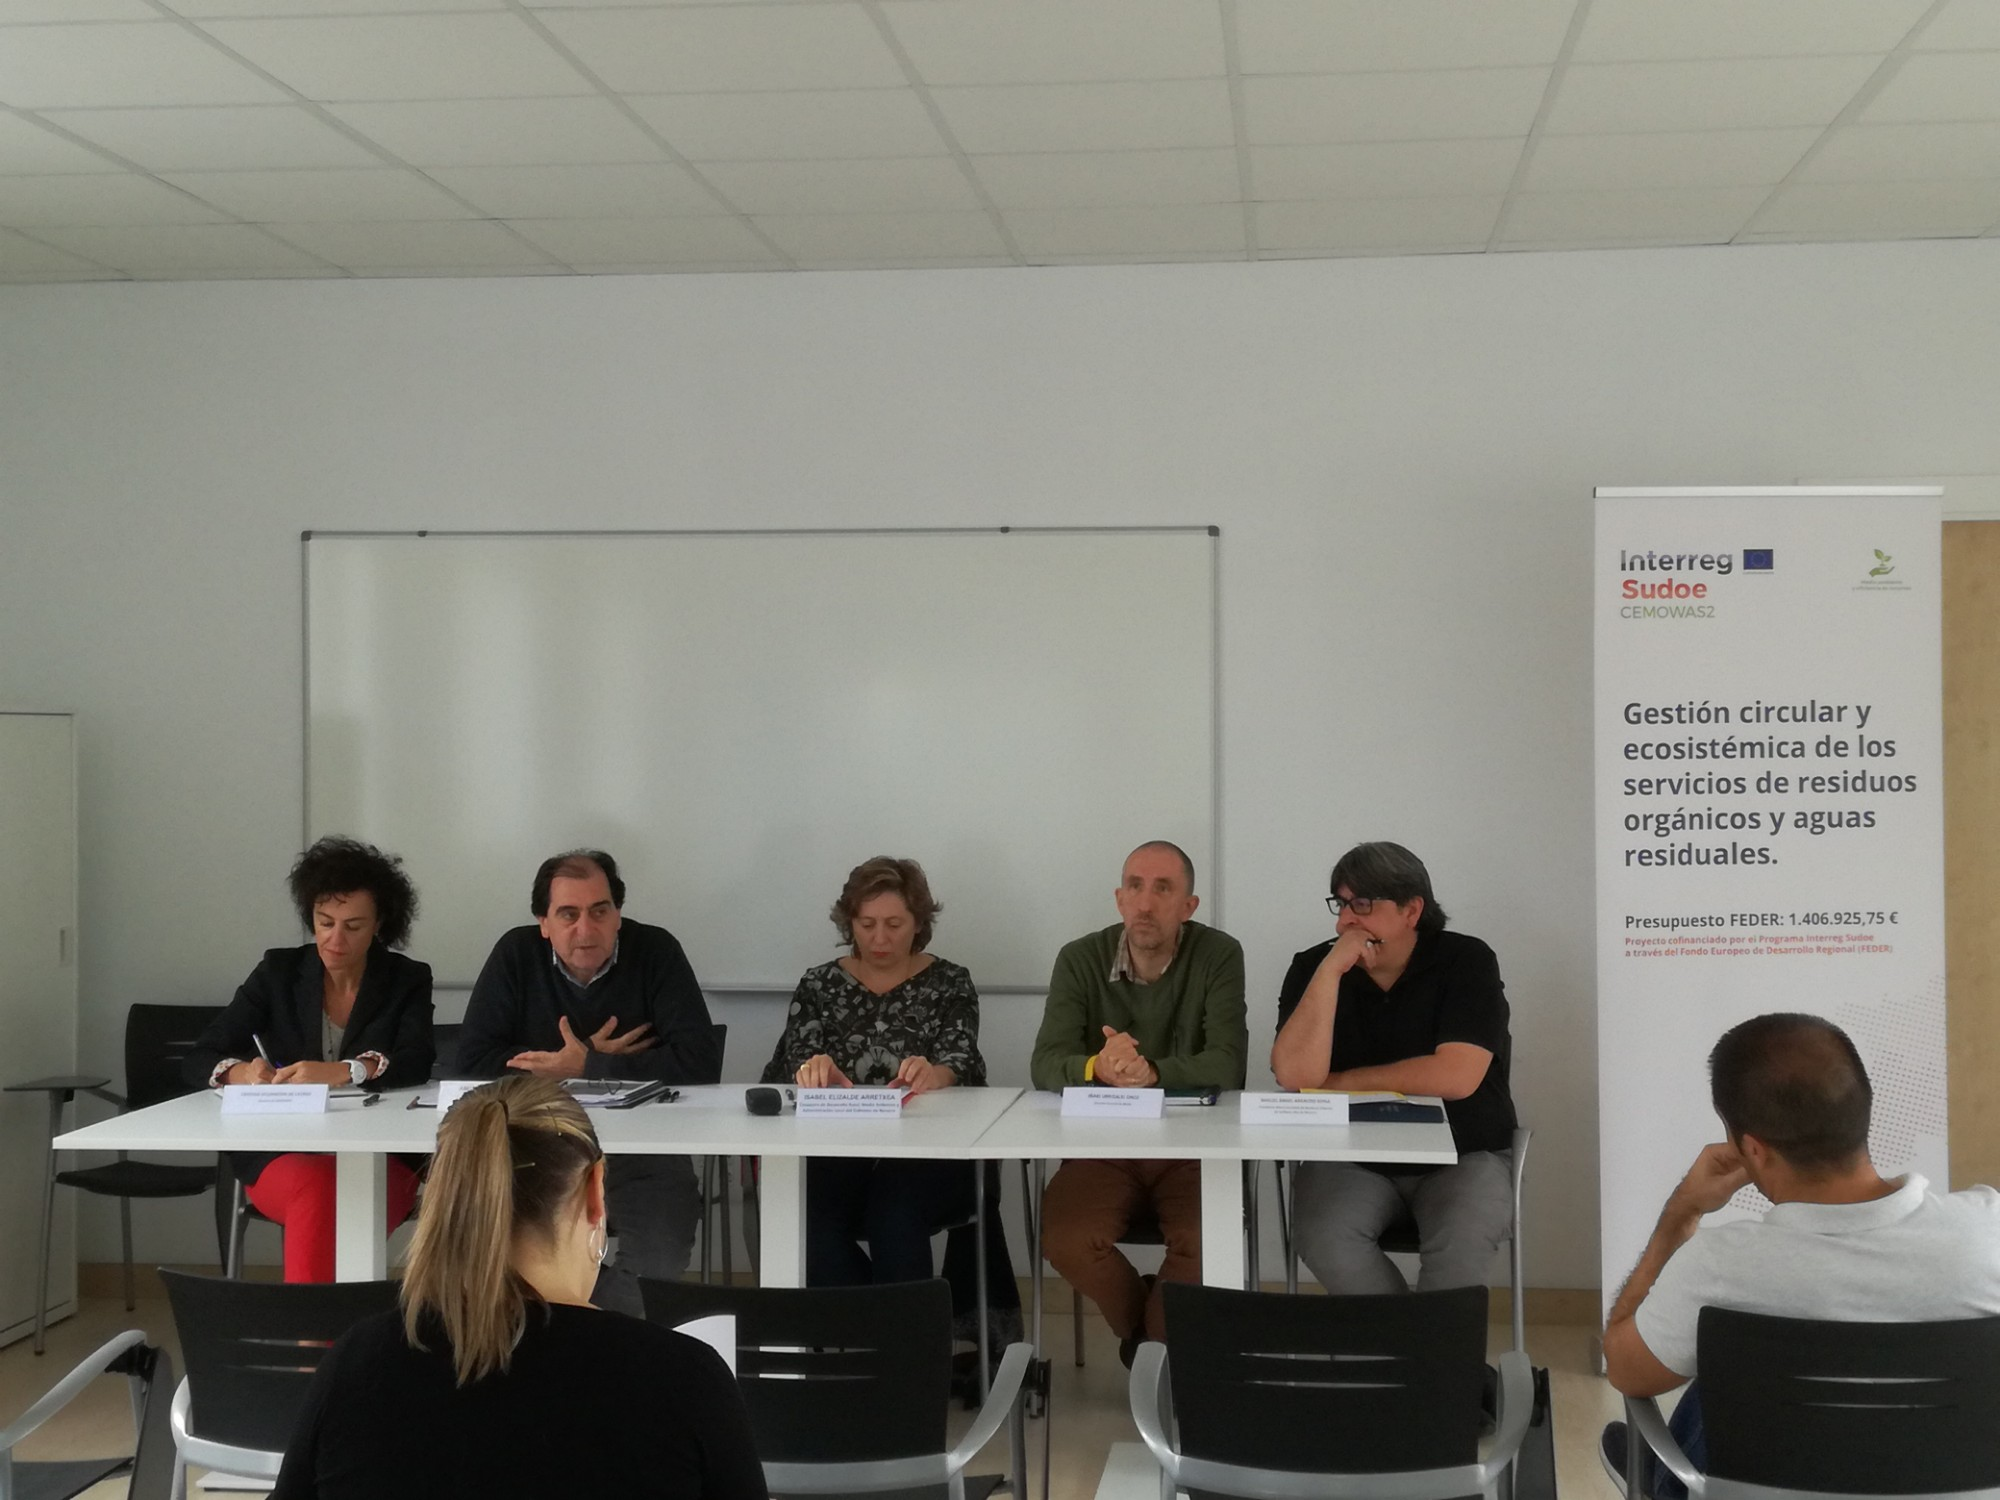 Press Conference Of CEMOWAS2 In Peralta